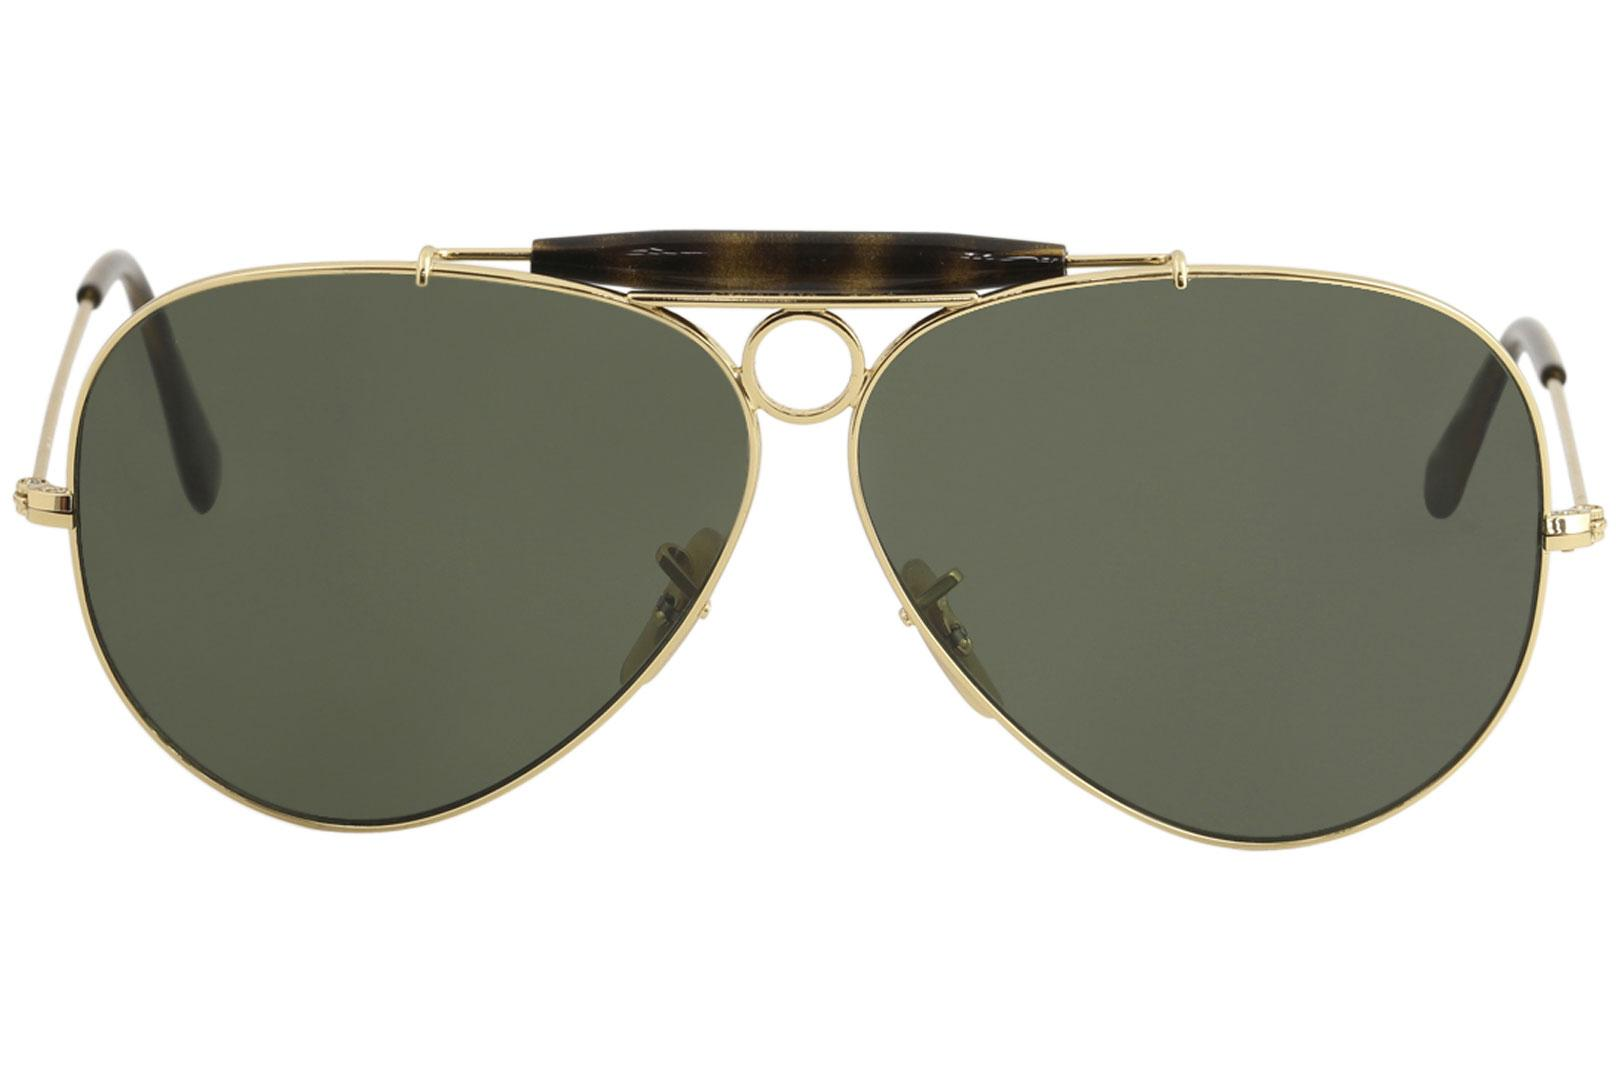 9ee02300407 ... low price ray ban mens shooter rb3138 rb 3138 rayban fashion aviator  sunglasses by ray ban